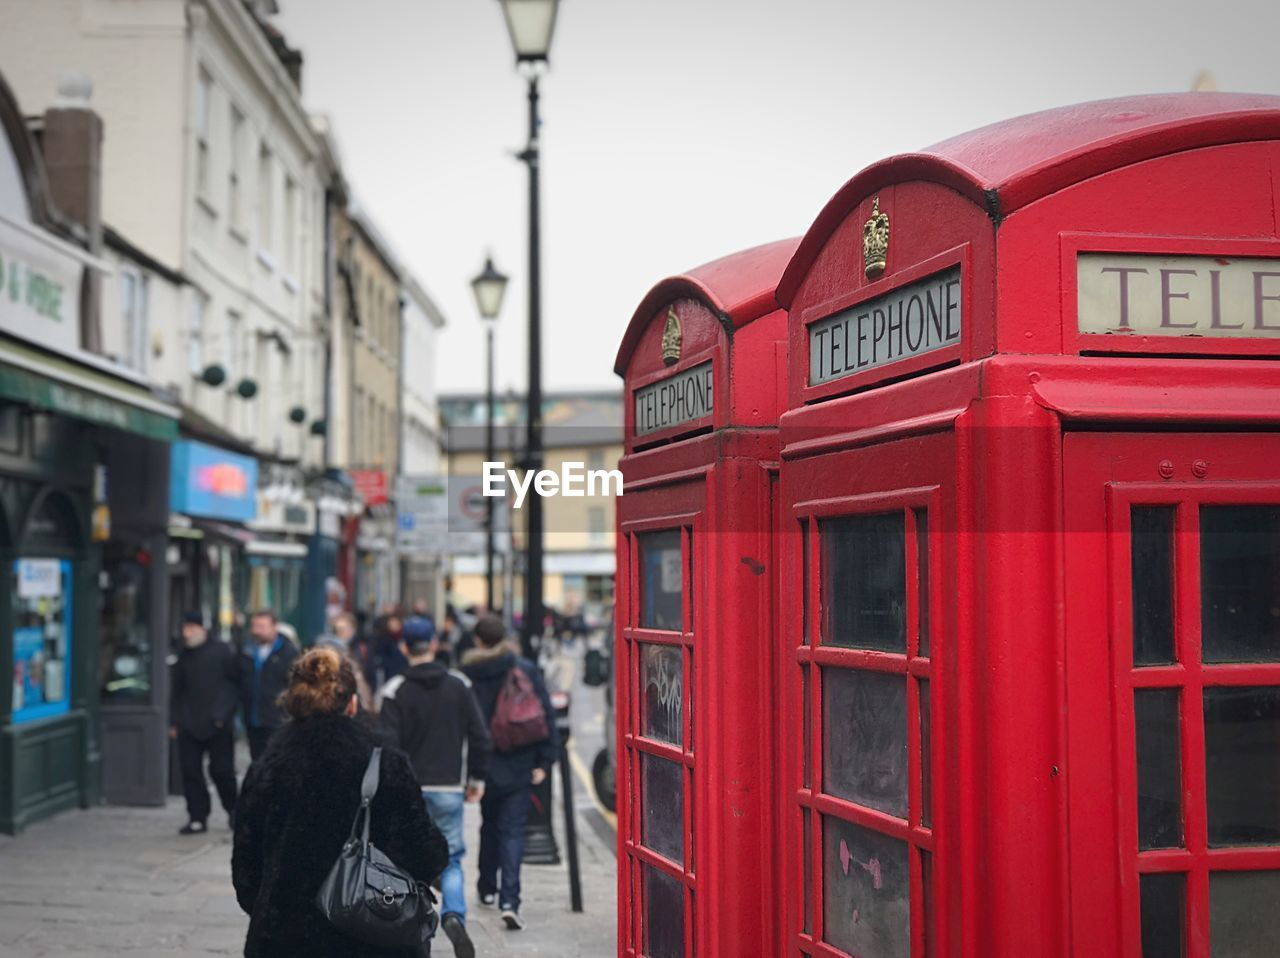 telephone booth, communication, red, pay phone, street, connection, built structure, architecture, building exterior, outdoors, city, telephone, day, real people, men, telecommunications equipment, technology, sky, people